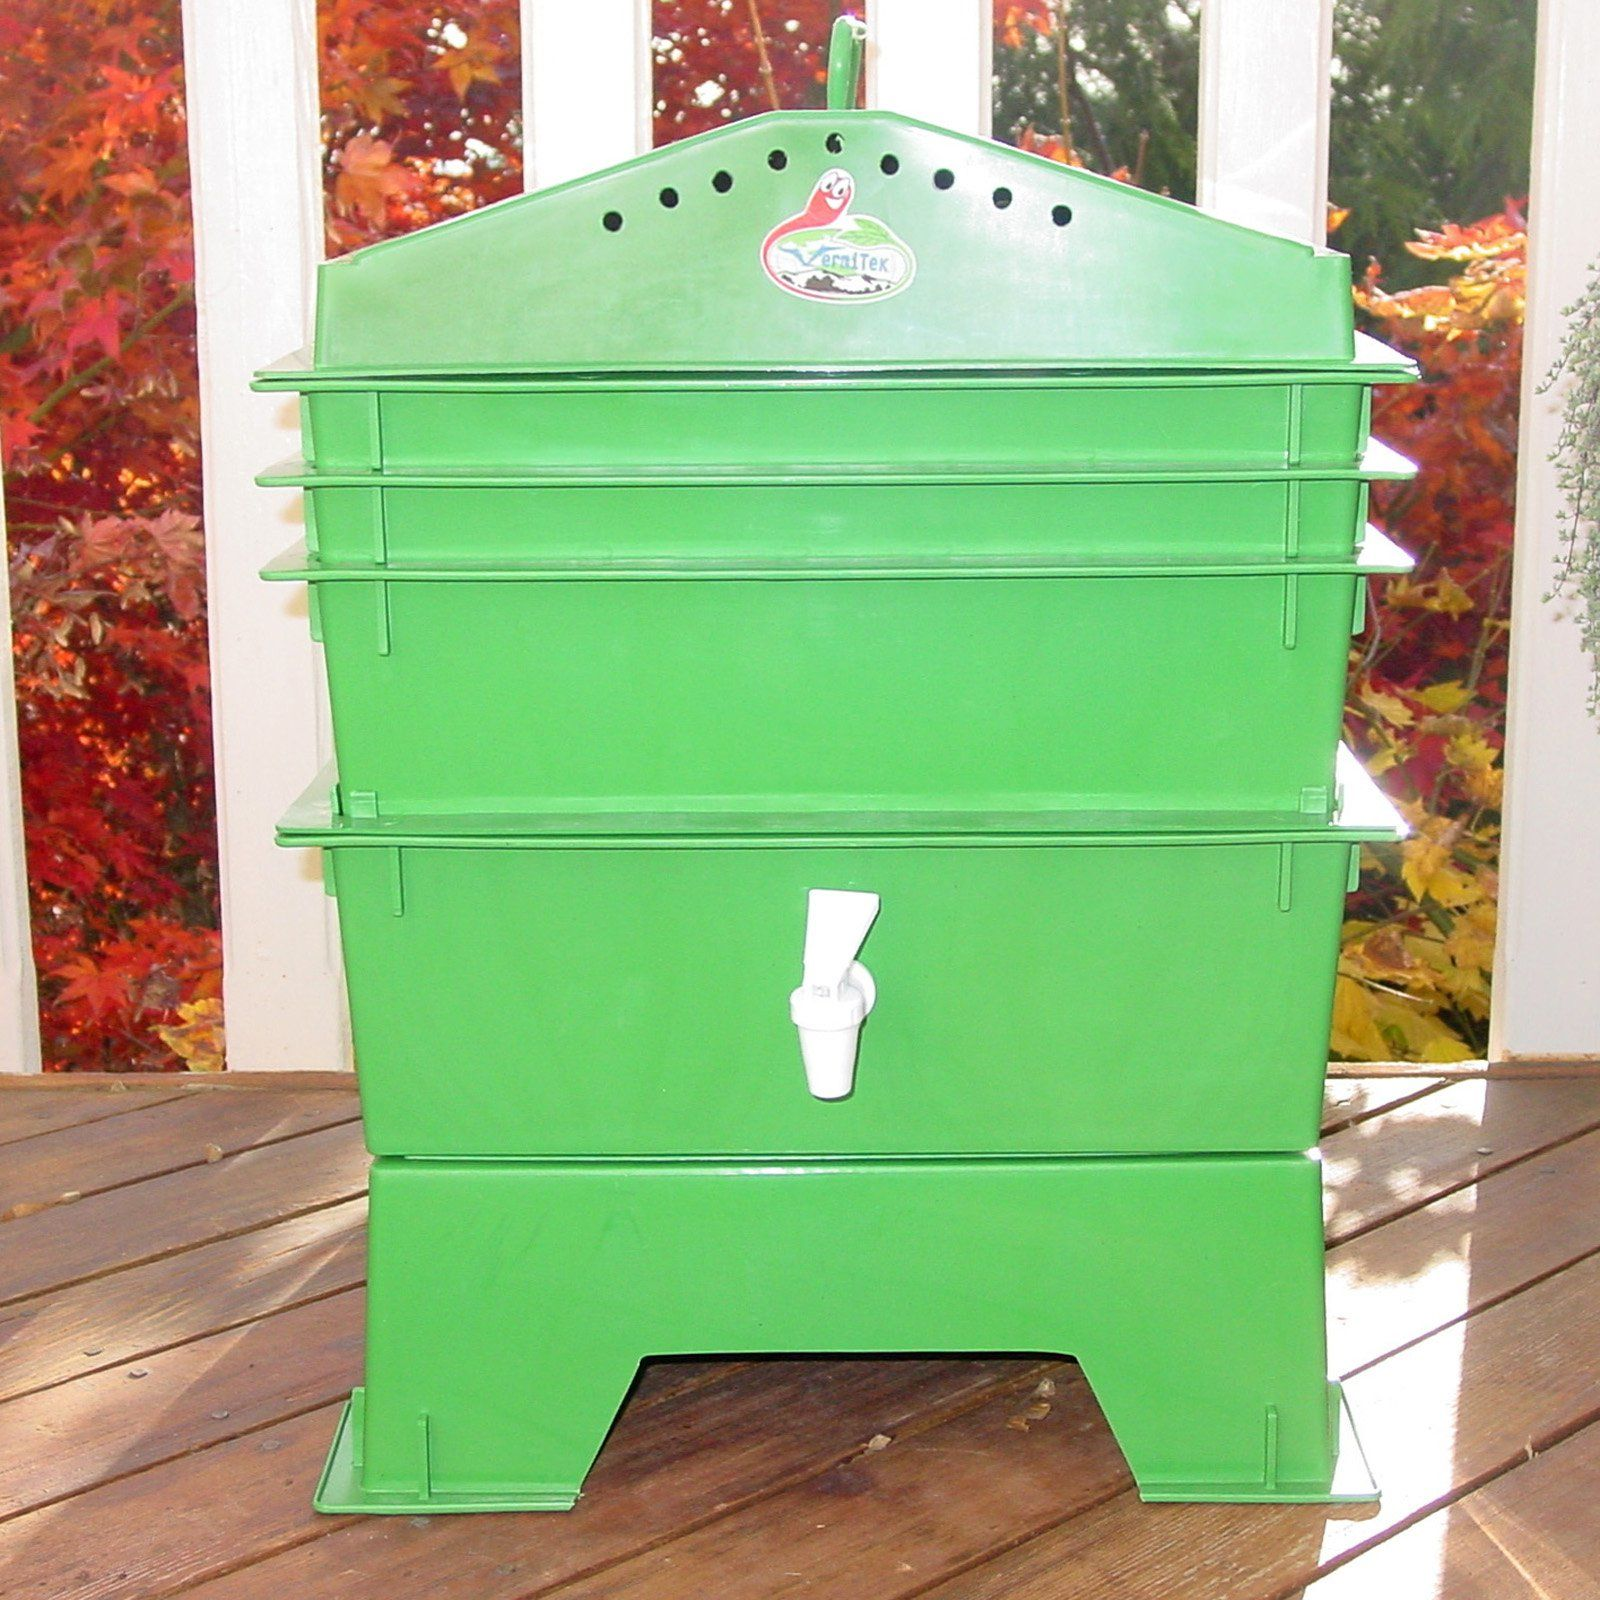 VermiHut 3Tray Recycled Plastic Worm Composter Green